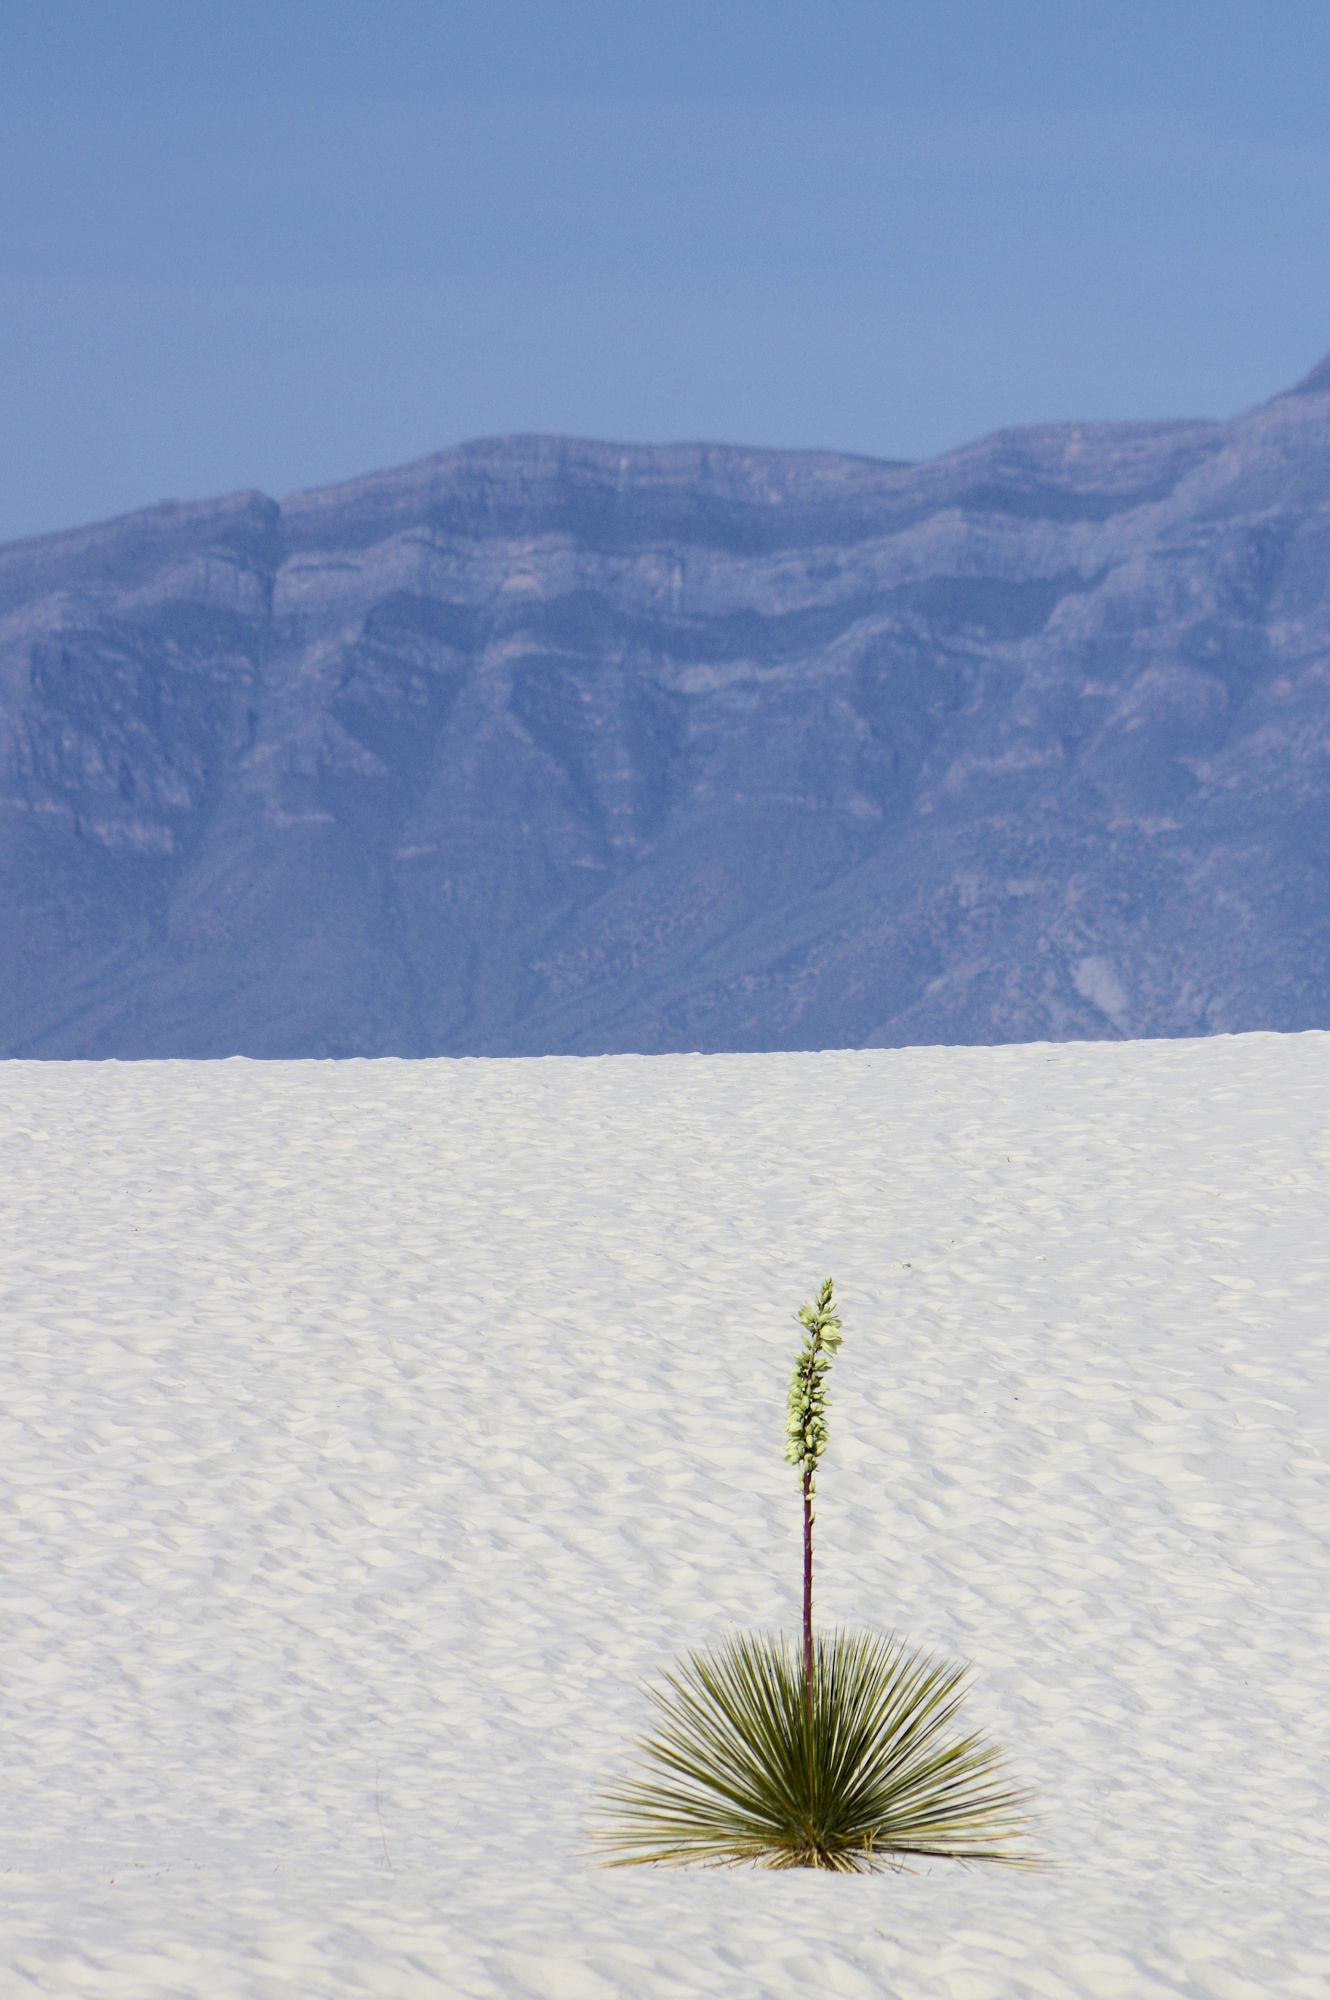 White Sands National Monument in Otero County, New Mexico. Eco-Tourism is a significant portion of Southern New Mexico's economy